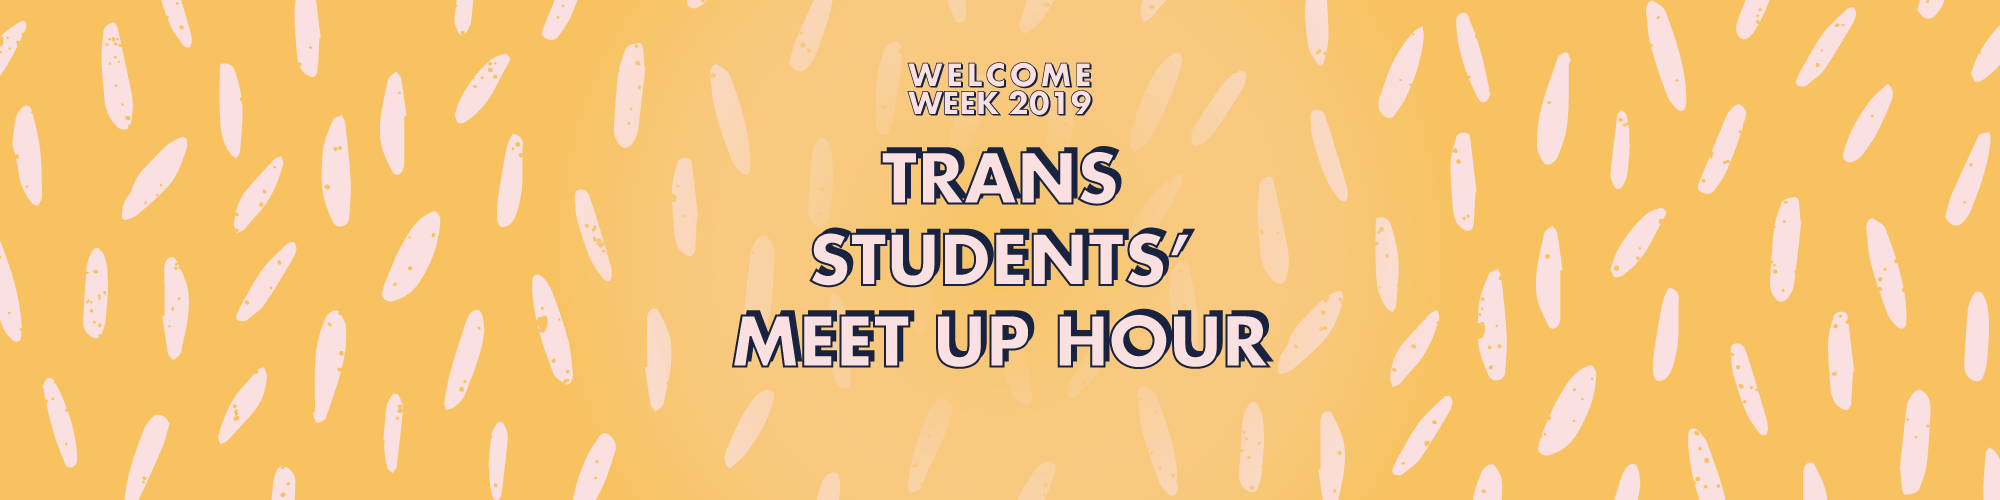 Trans and Non-Binary Students' Meet Up Hour